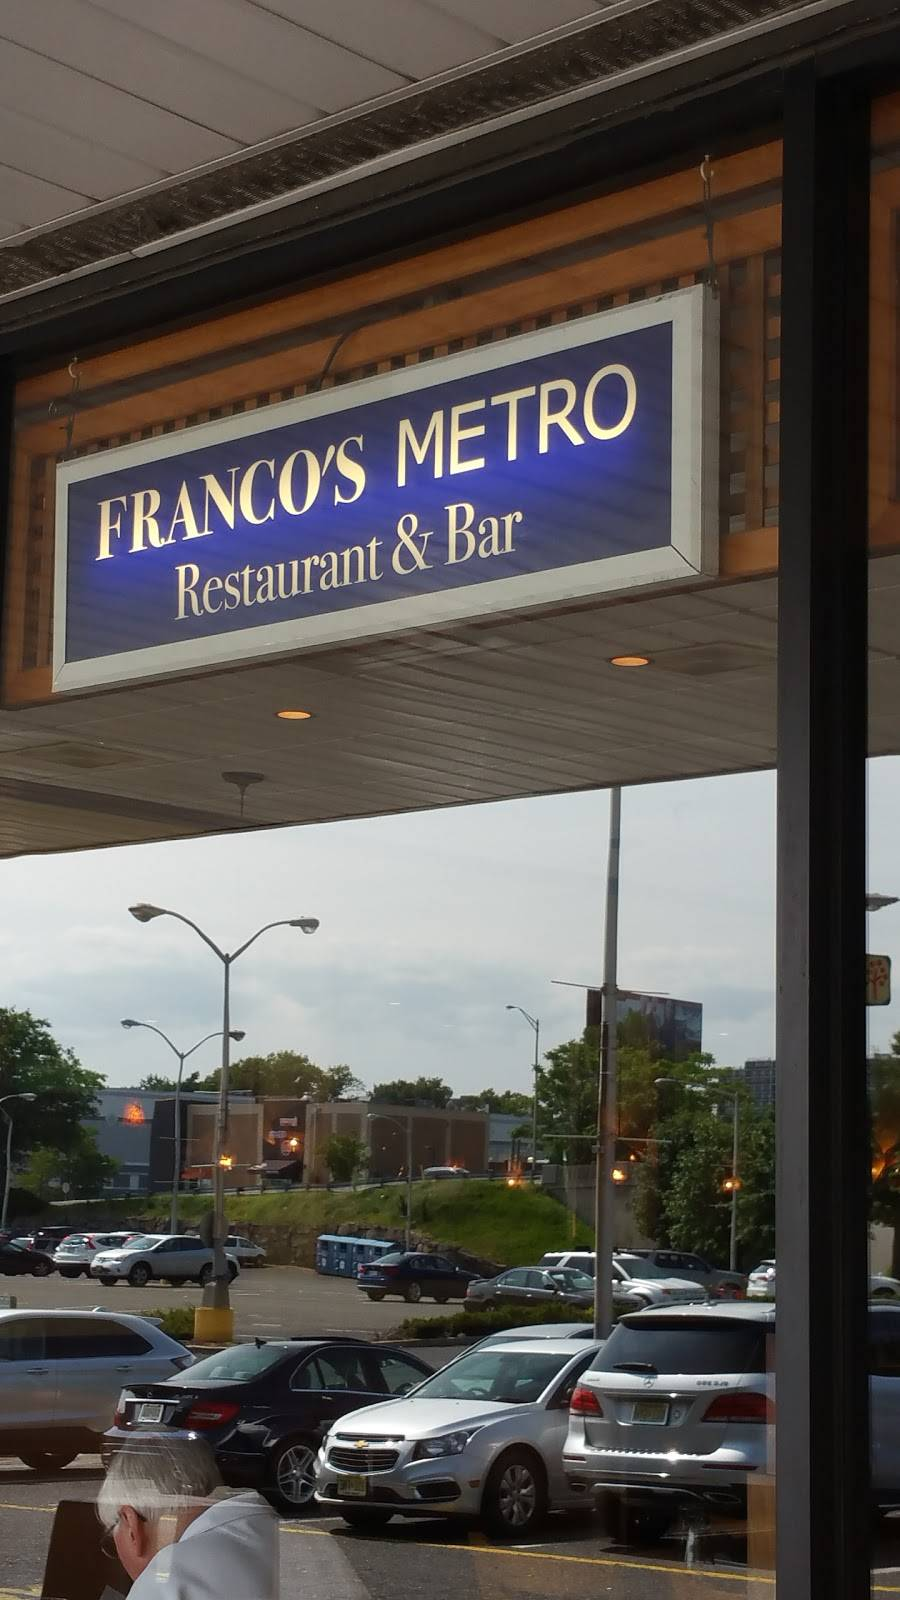 Francos Metro Restaurant, Bar, Pizza | restaurant | 1475 Bergen Blvd, Fort Lee, NJ 07024, USA | 2014616651 OR +1 201-461-6651